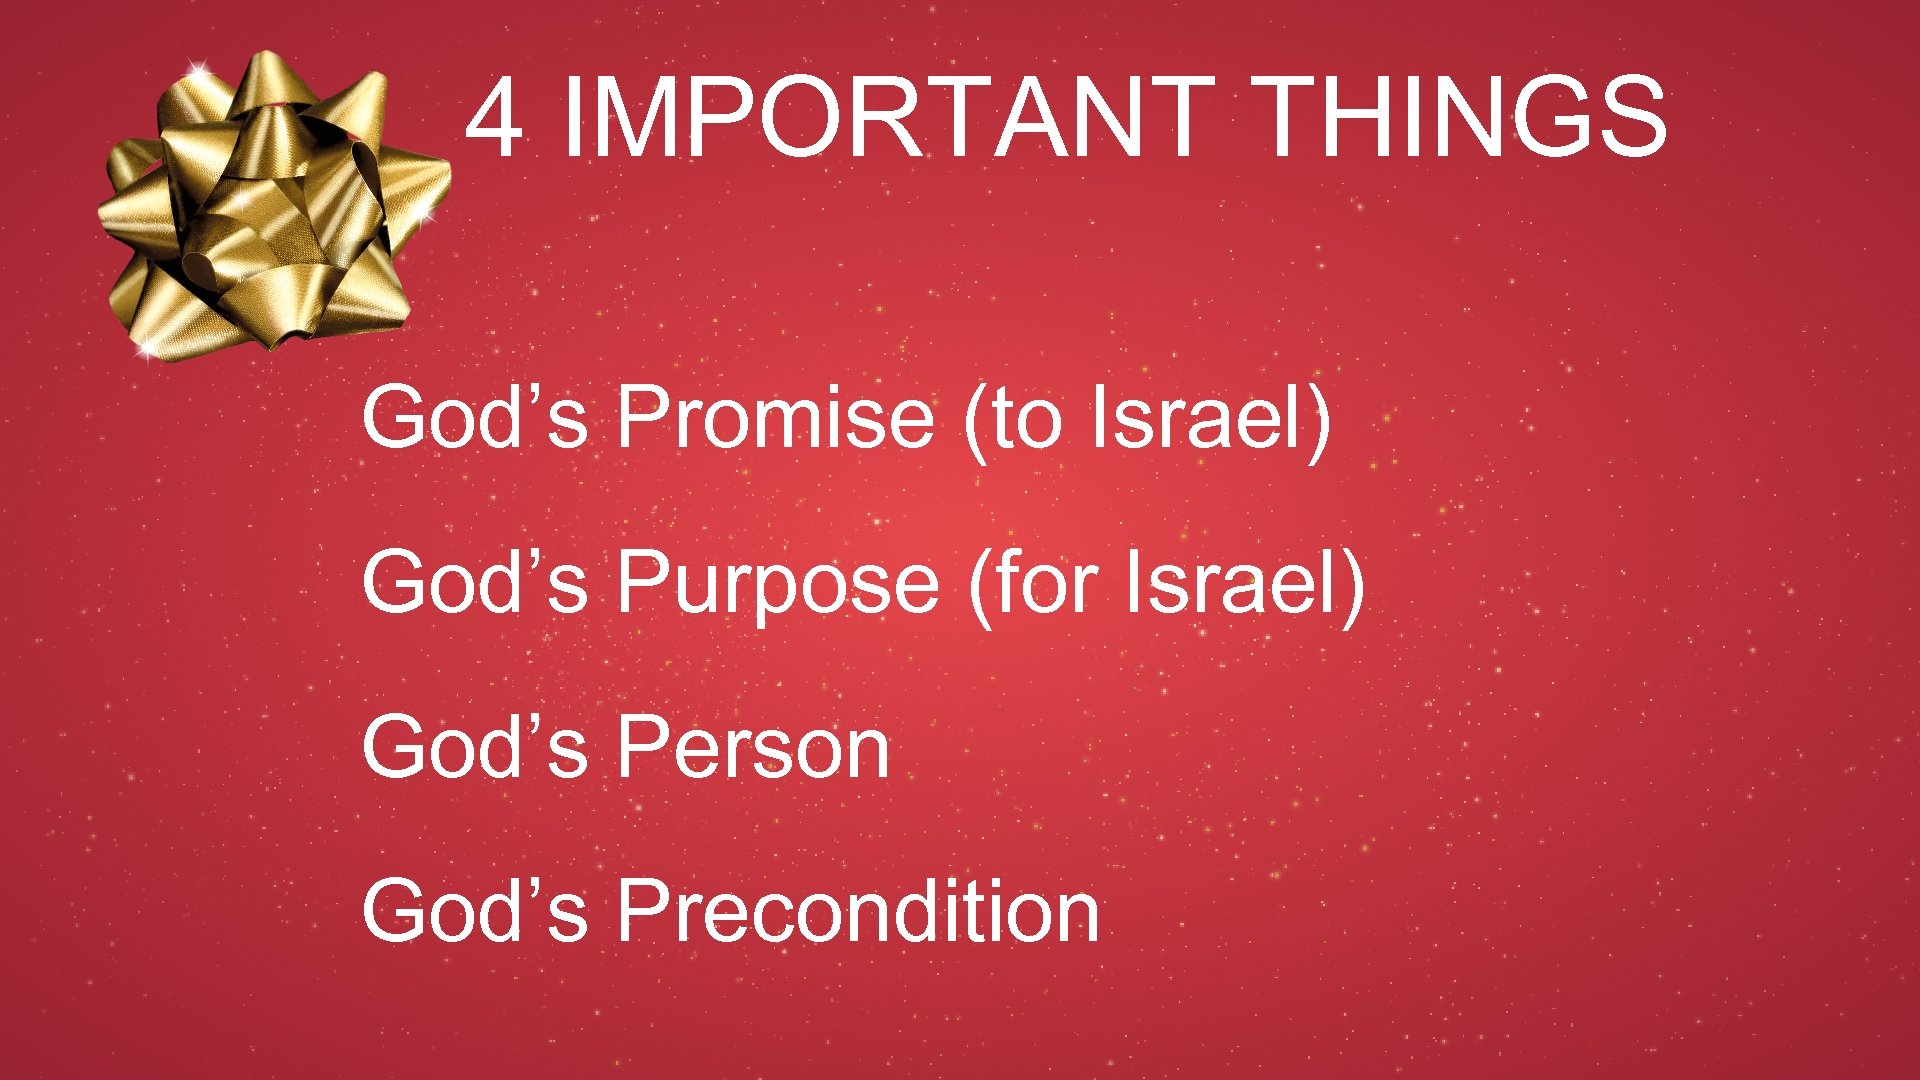 4 IMPORTANT THINGS God's Promise (to Israel) God's Purpose (for Israel) God's Person God's